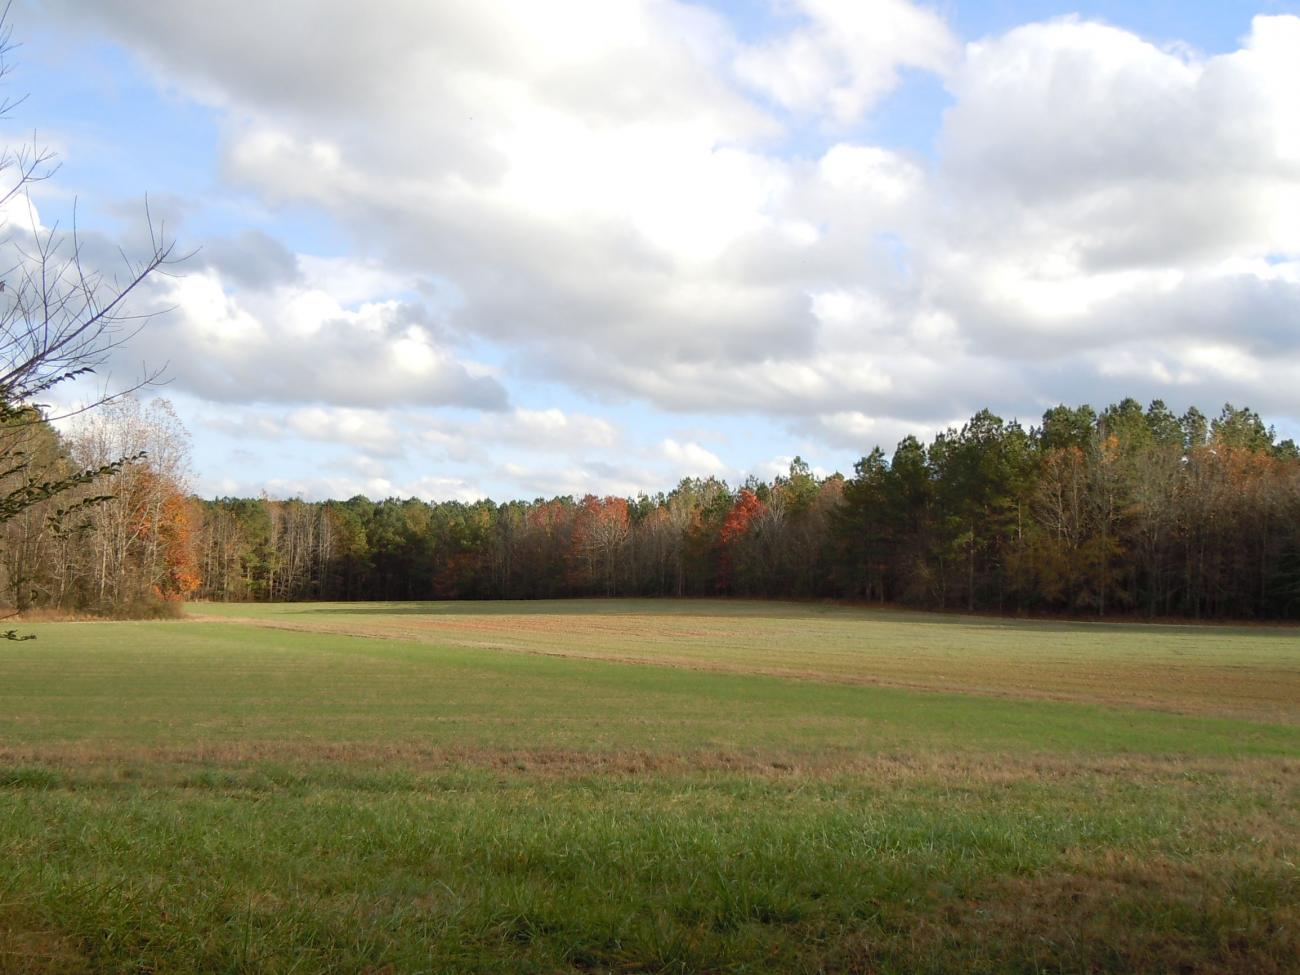 green meadows in front of a forest with some fall foliage